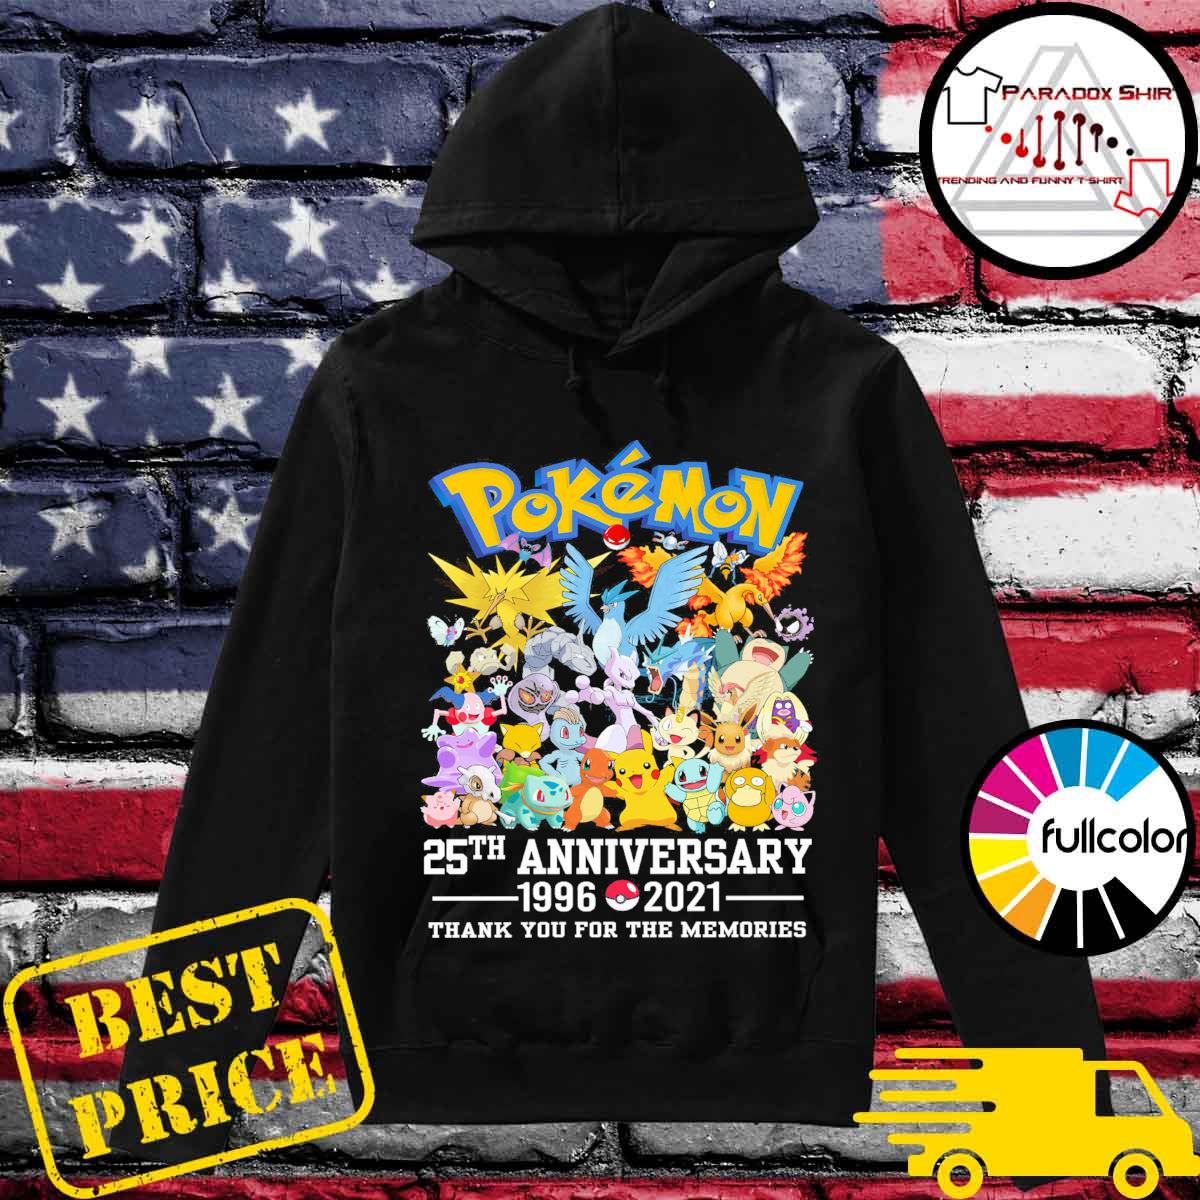 Pokémon 25th anniversary 1996 2021 thank you for the memories s Hoodie